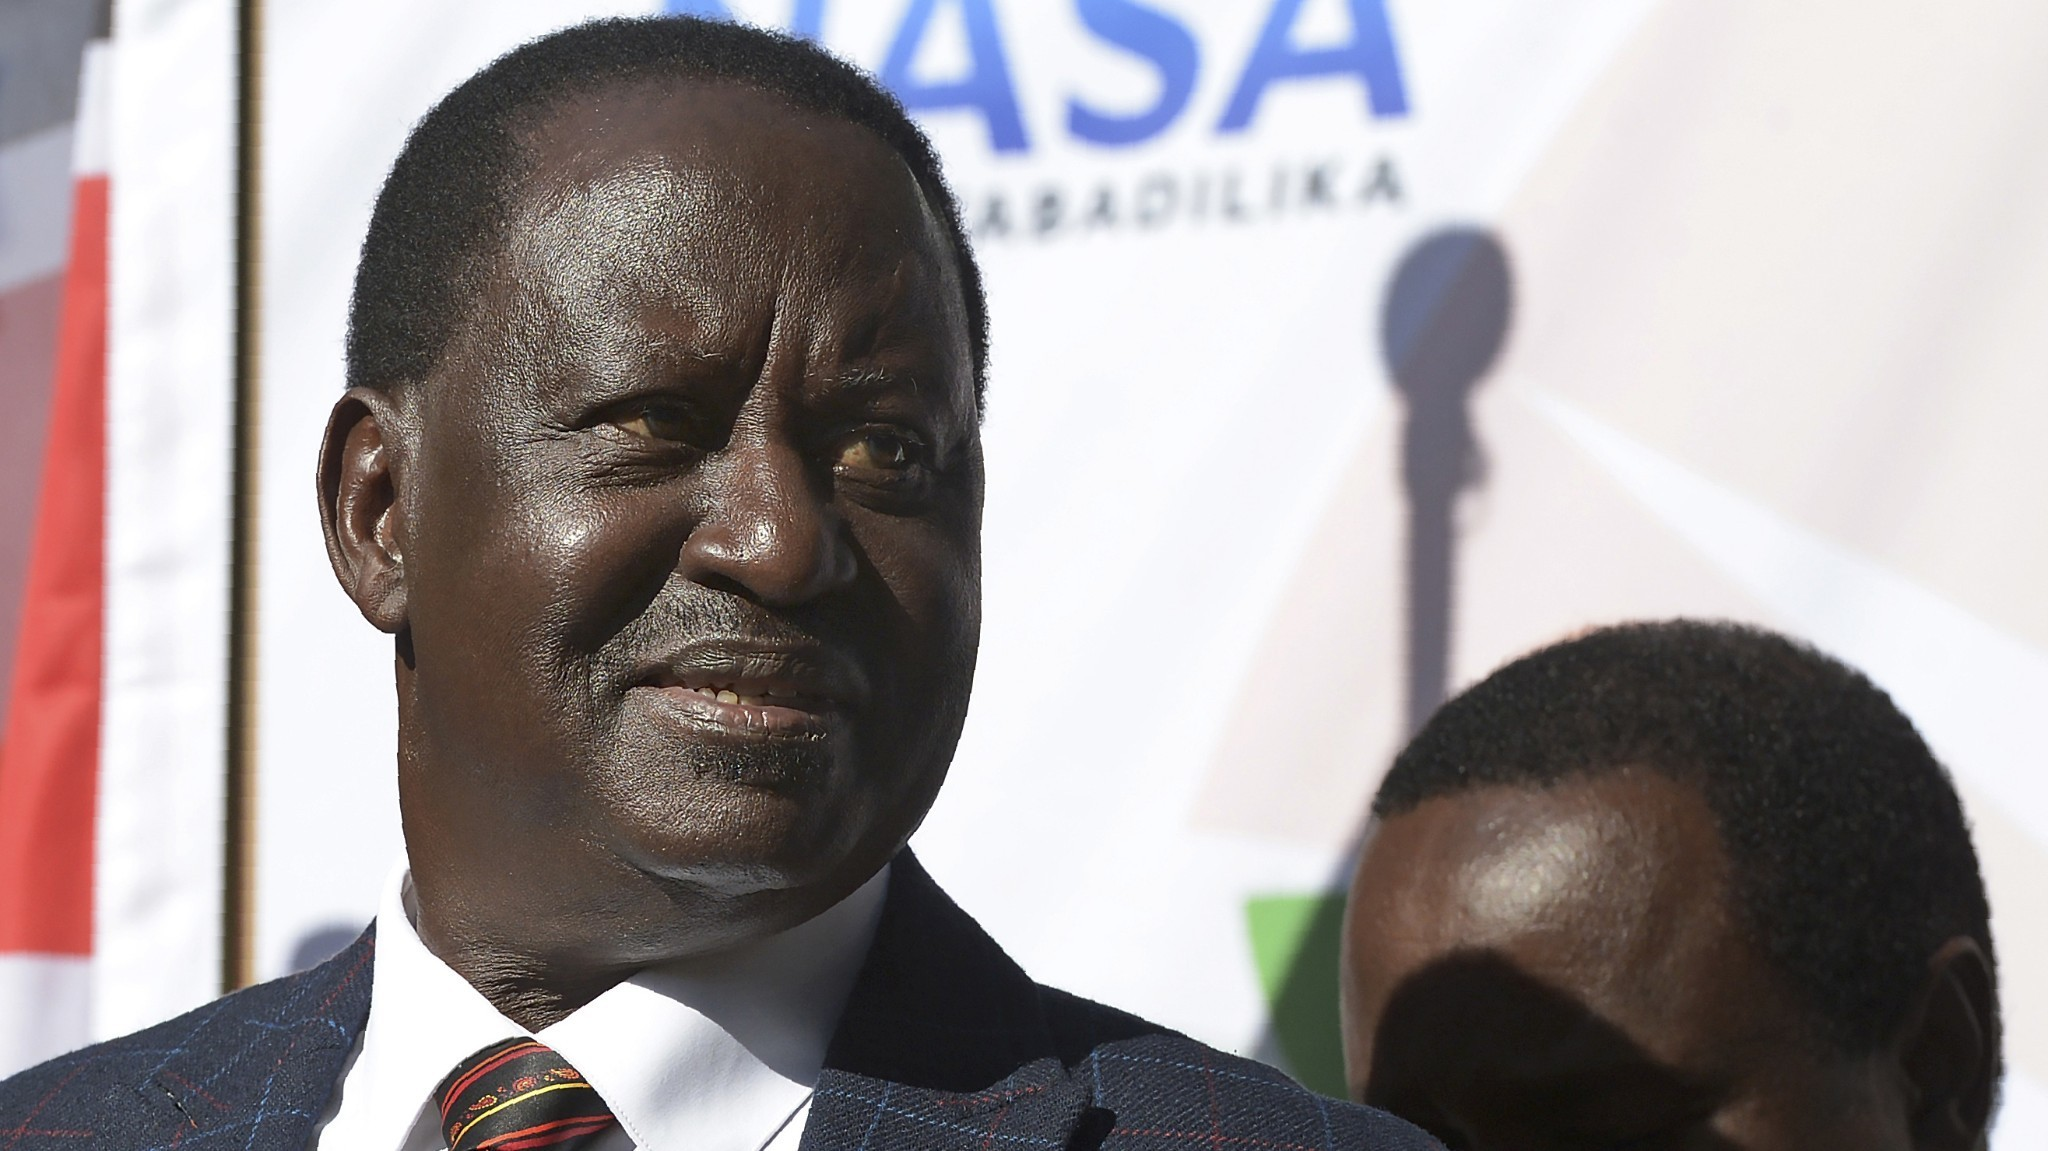 Kenyan Opposition Leader Vows To Take Election Challenge To Supreme Court